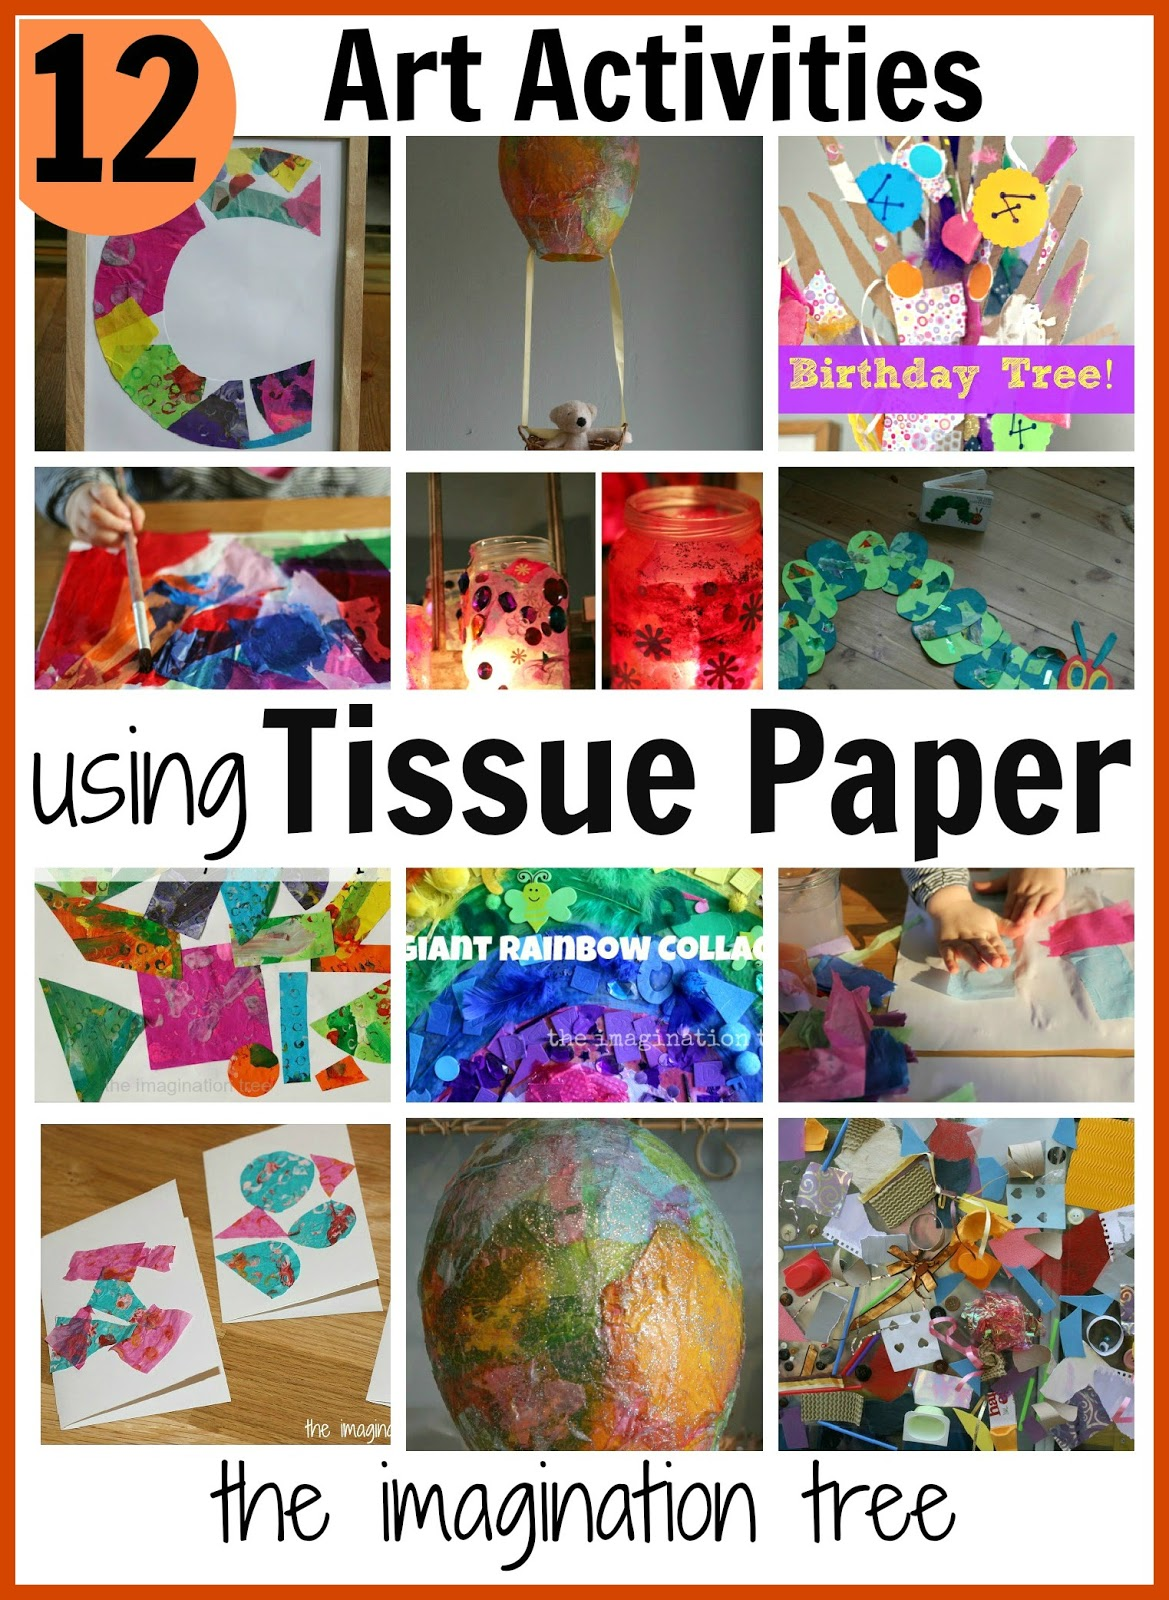 12 Art Activities using Tissue Paper - The Imagination Tree